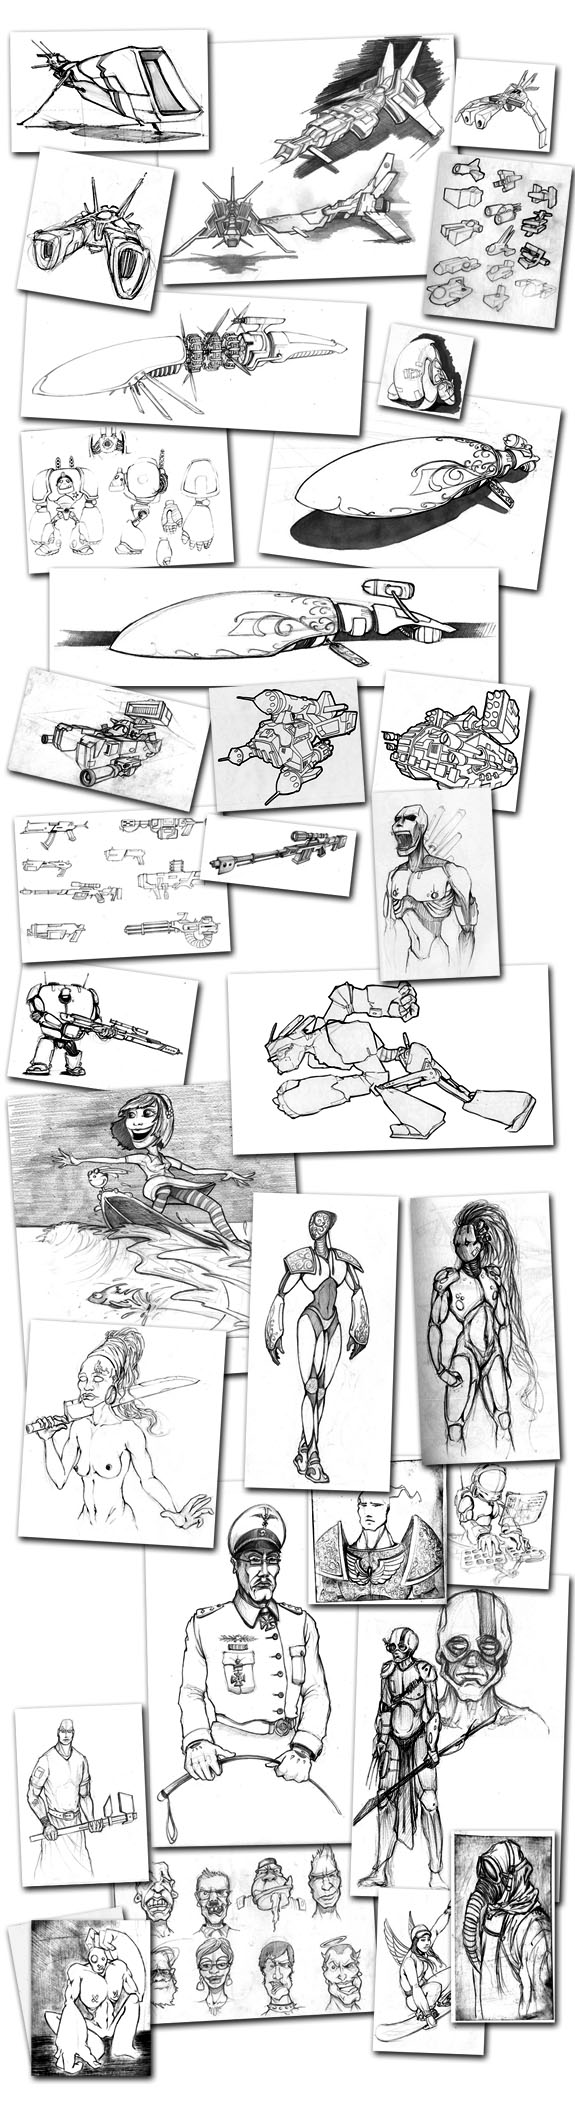 2005 – 2007 Drawings & Sketches